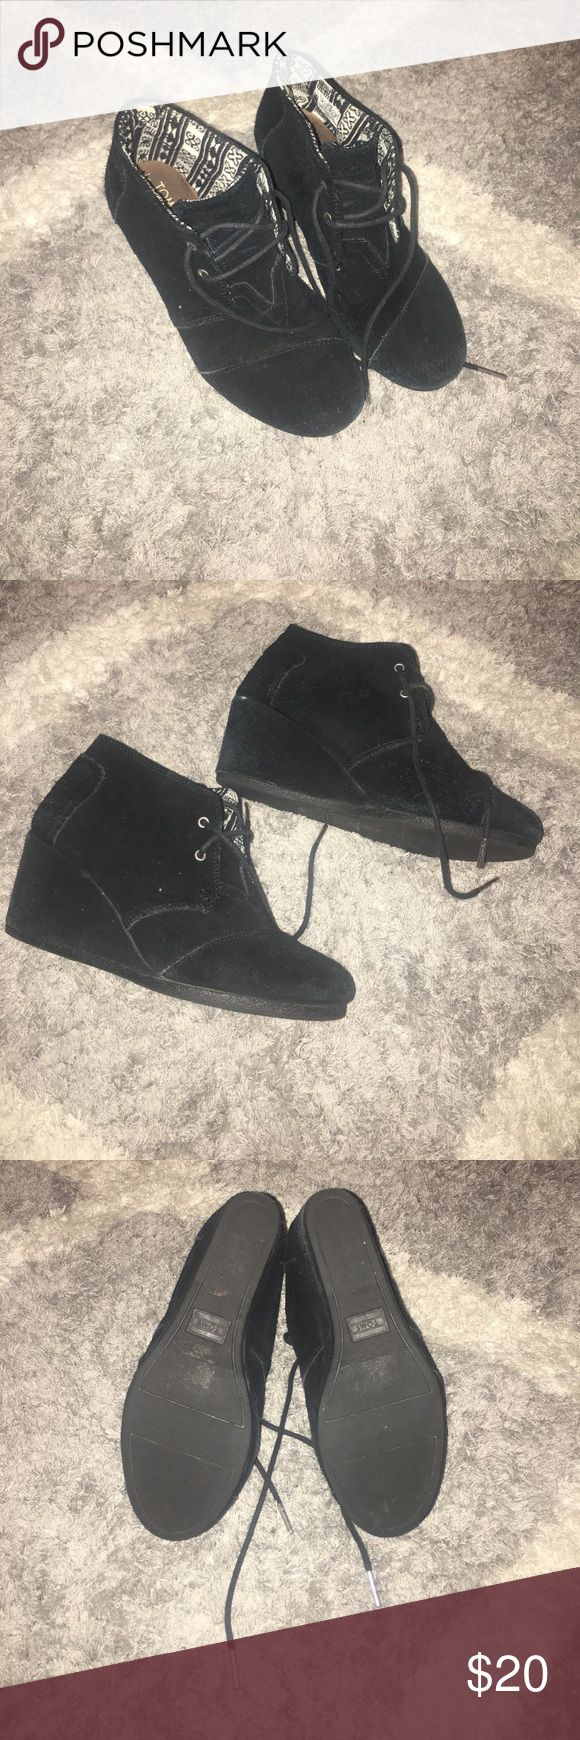 Toms Wedge Booties Size 8 Toms Wedge Booties Size 8 barely worn. Toms Shoes Ankle Boots & Booties